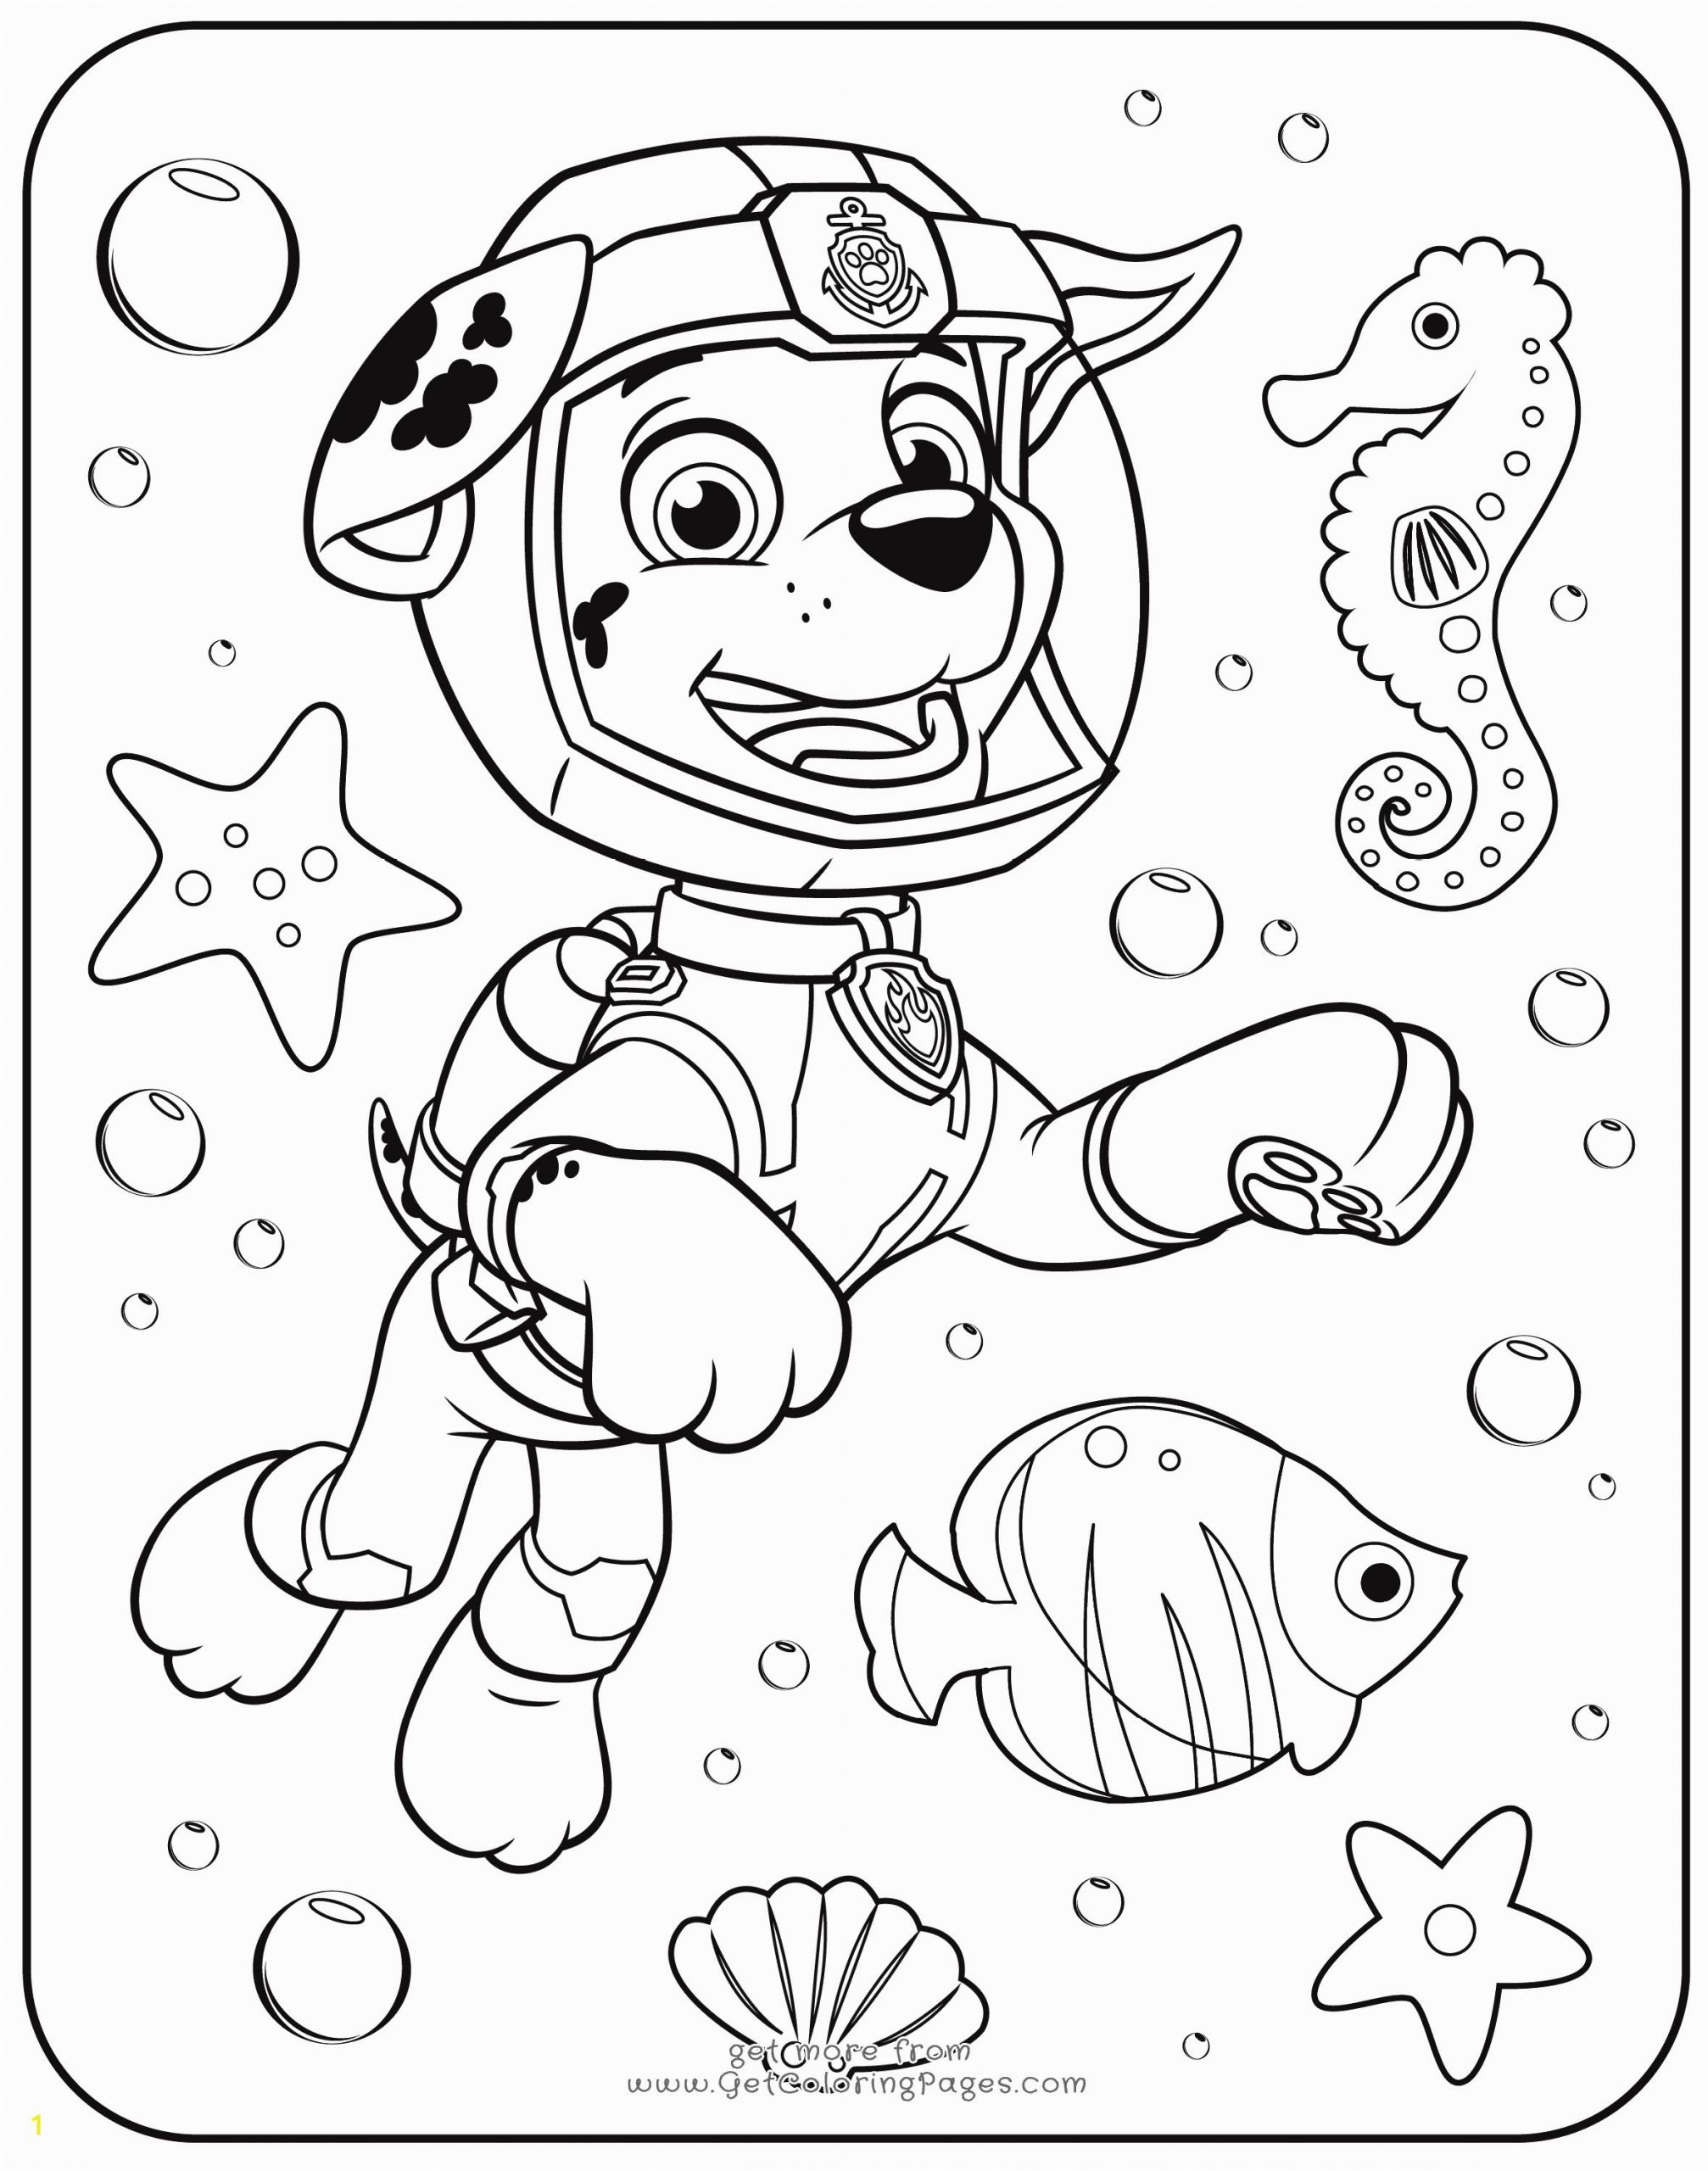 pawtrol coloringges for kids at drawings free skye book marvelous paw patrol coloring pages sky from marshall rubble chase rocky zuma and everest girl x helicopter